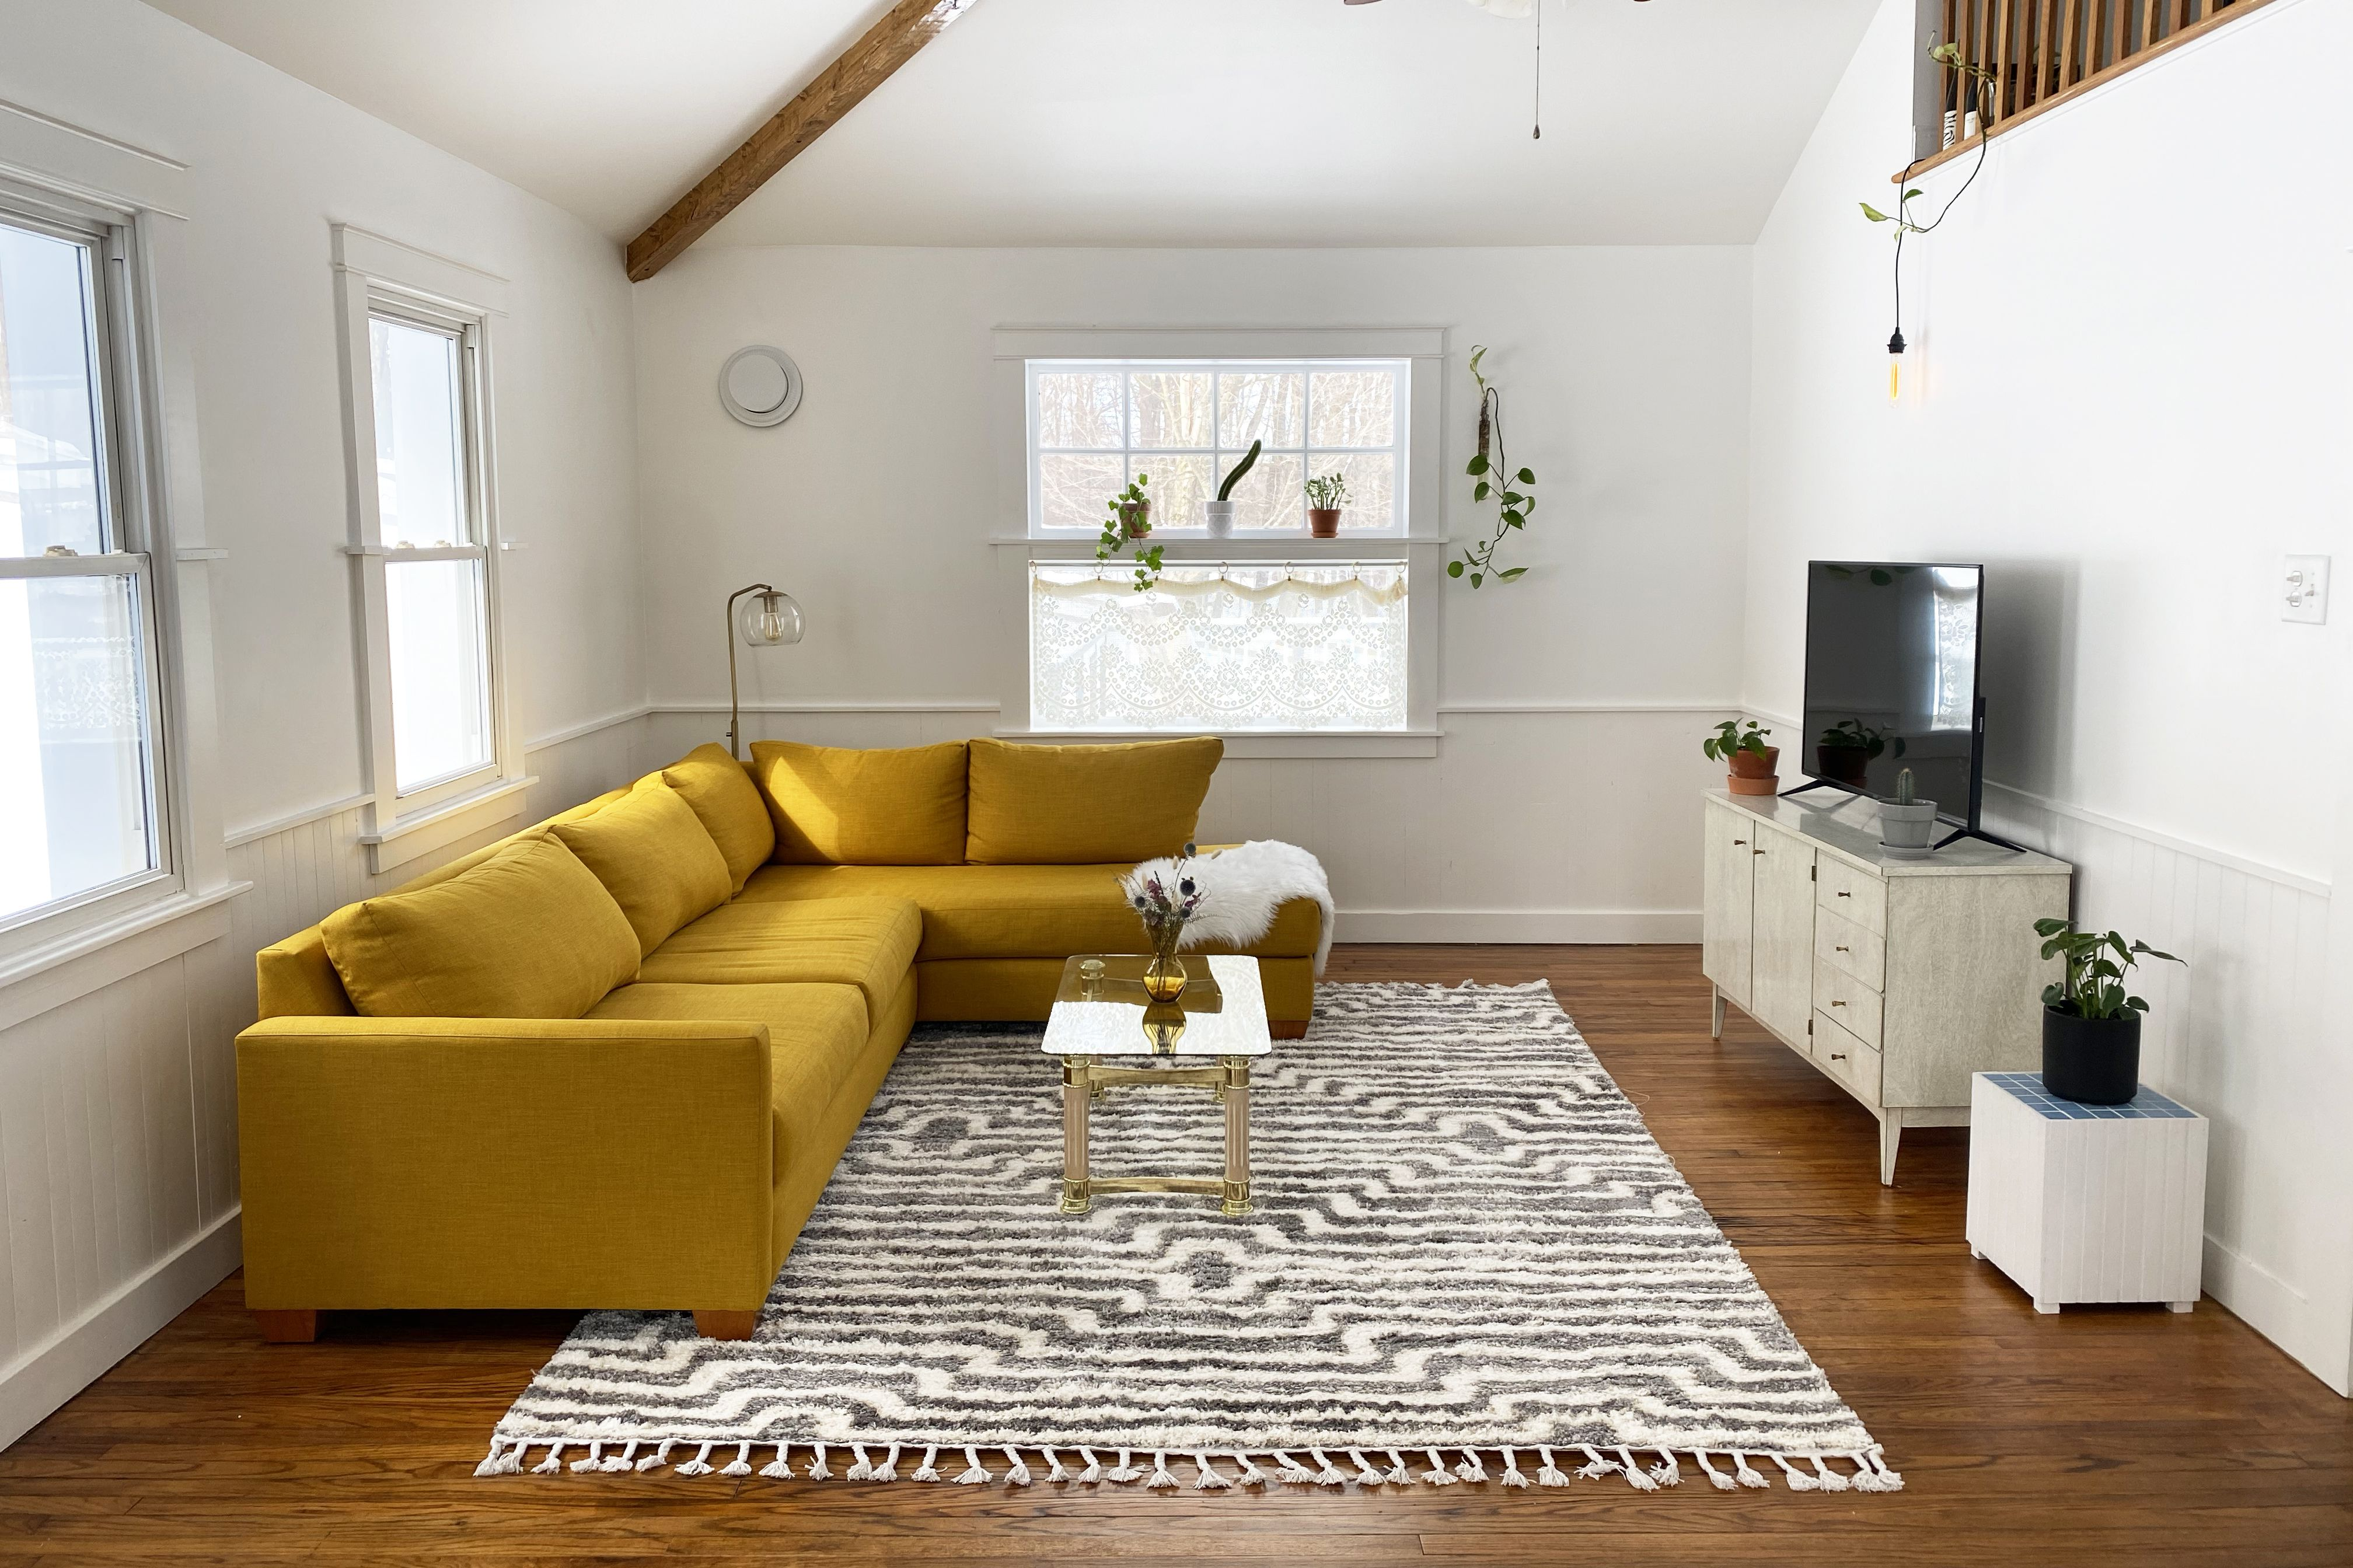 How To Select The Right Size Area Rug, Rugs For Living Room